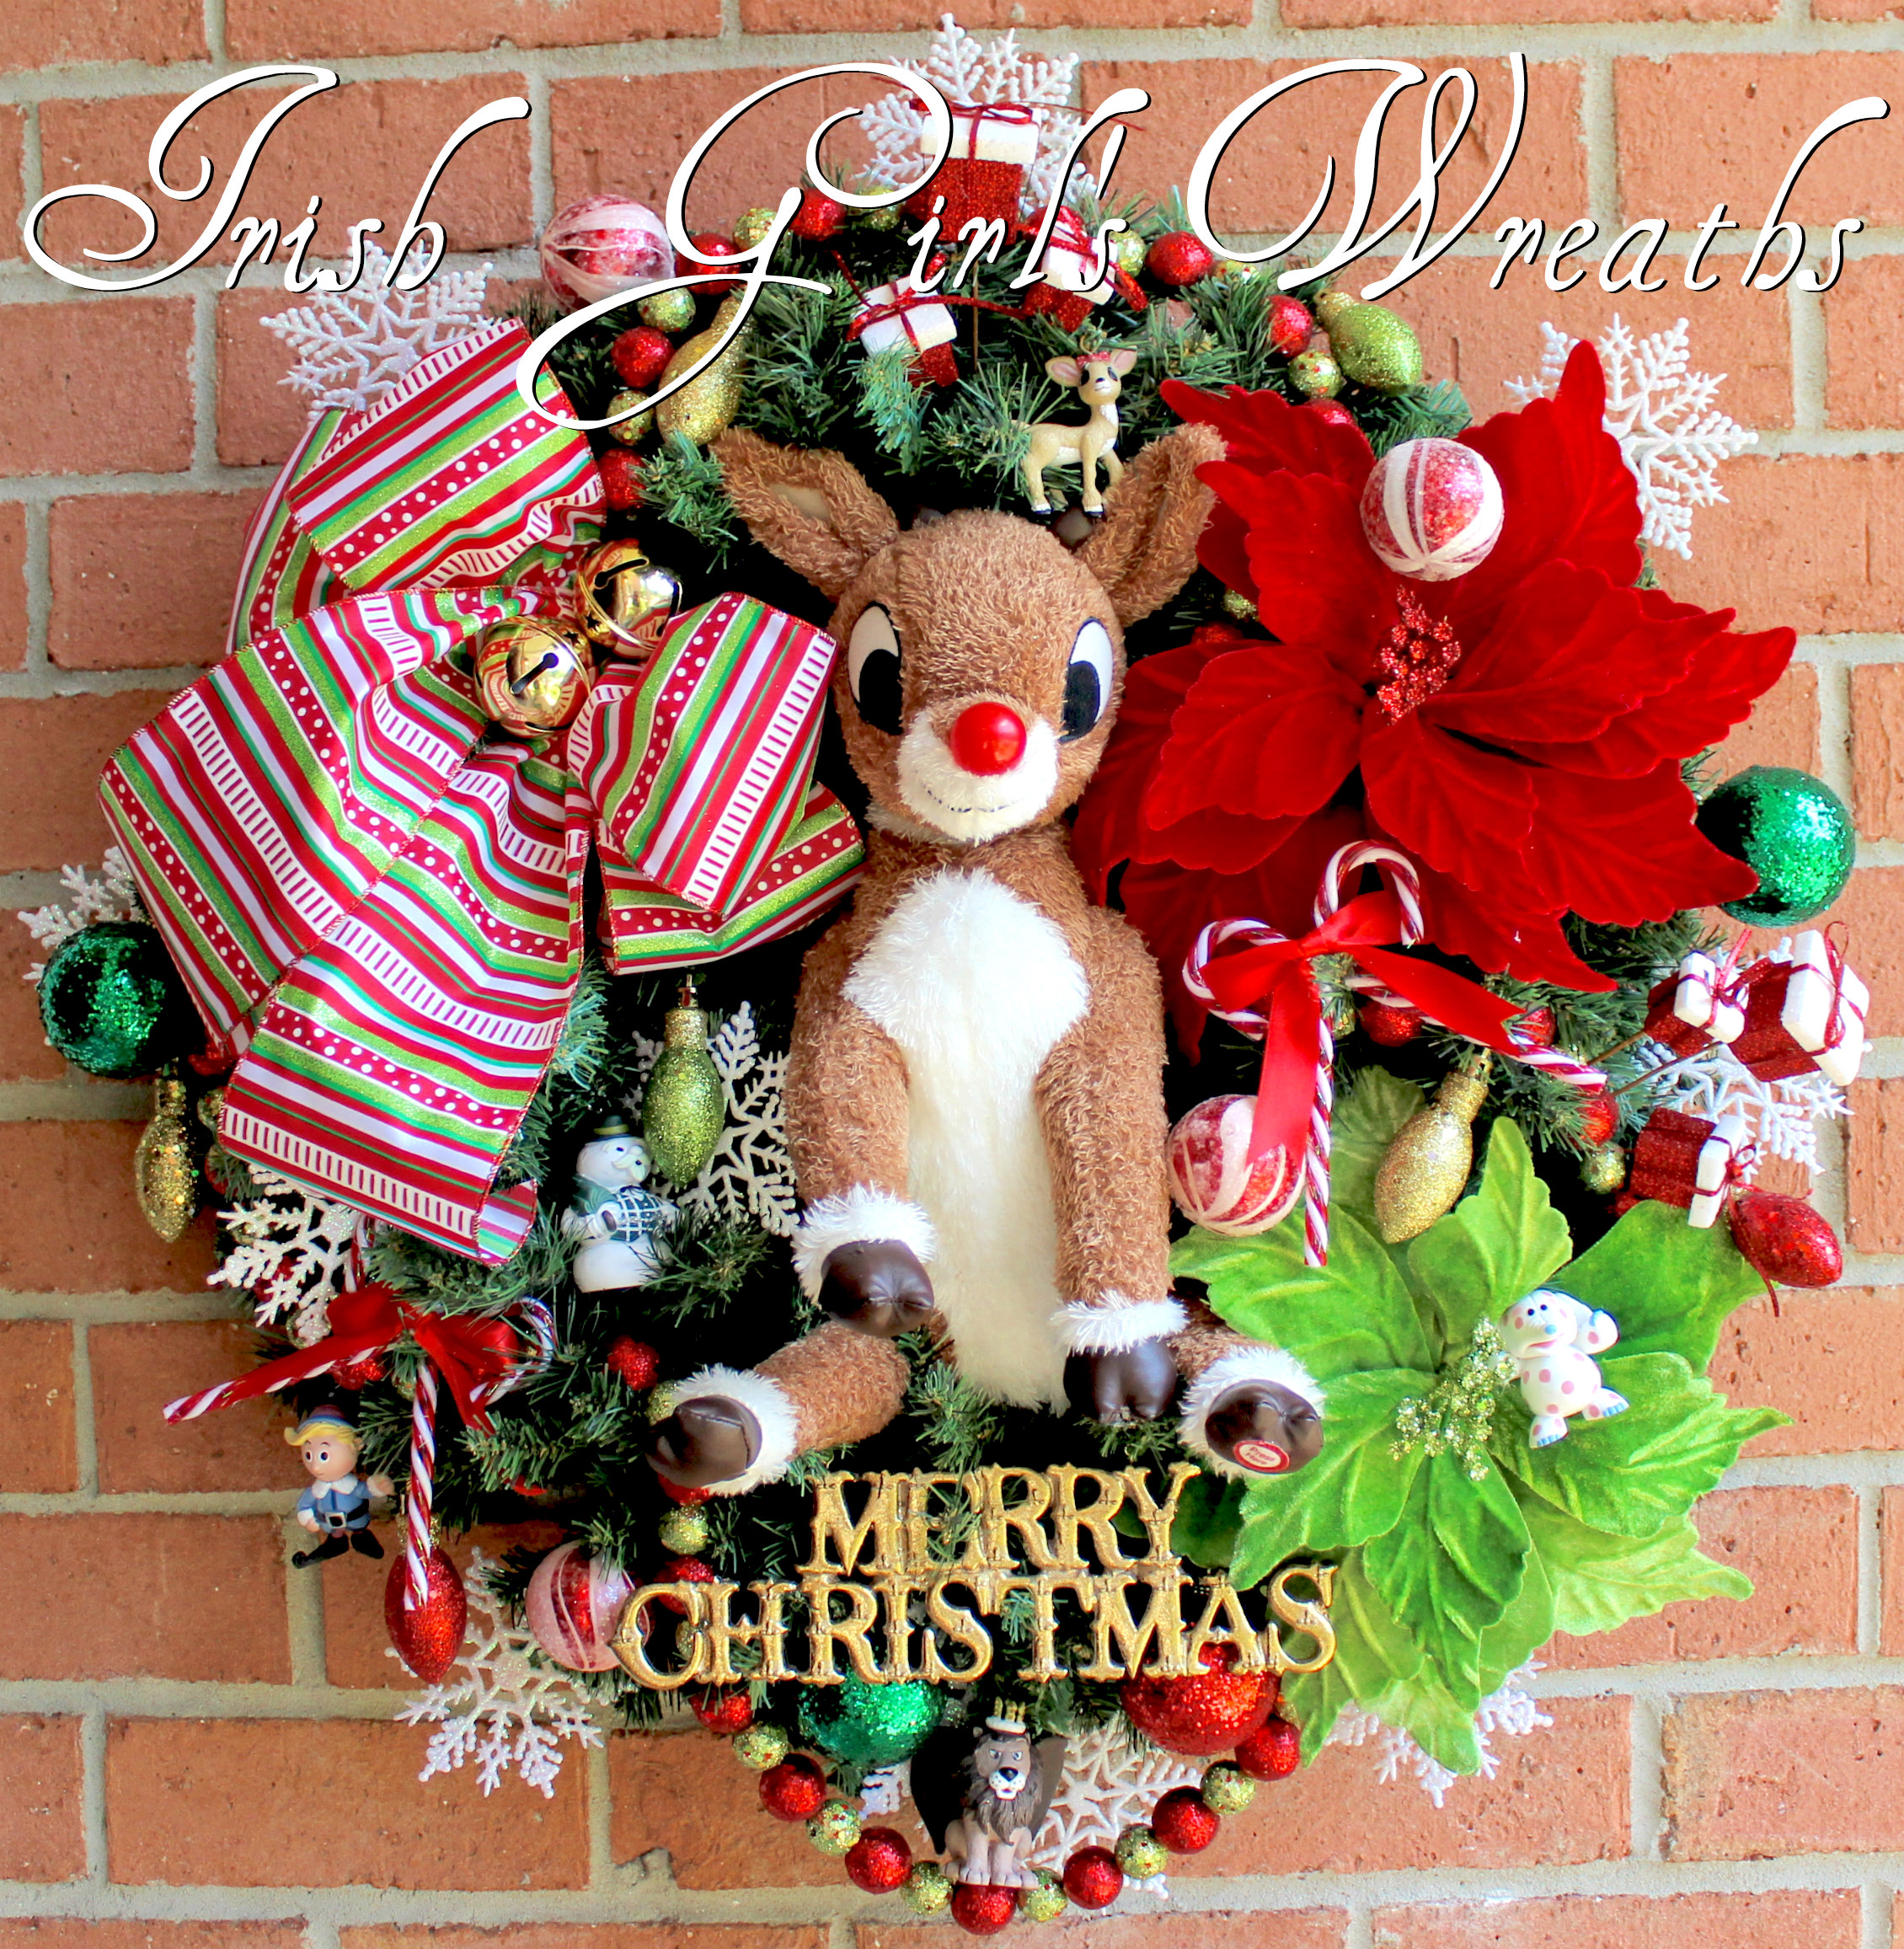 Musical Rudolph the Red-Nosed Reindeer and Misfit Toys Christmas Wreath